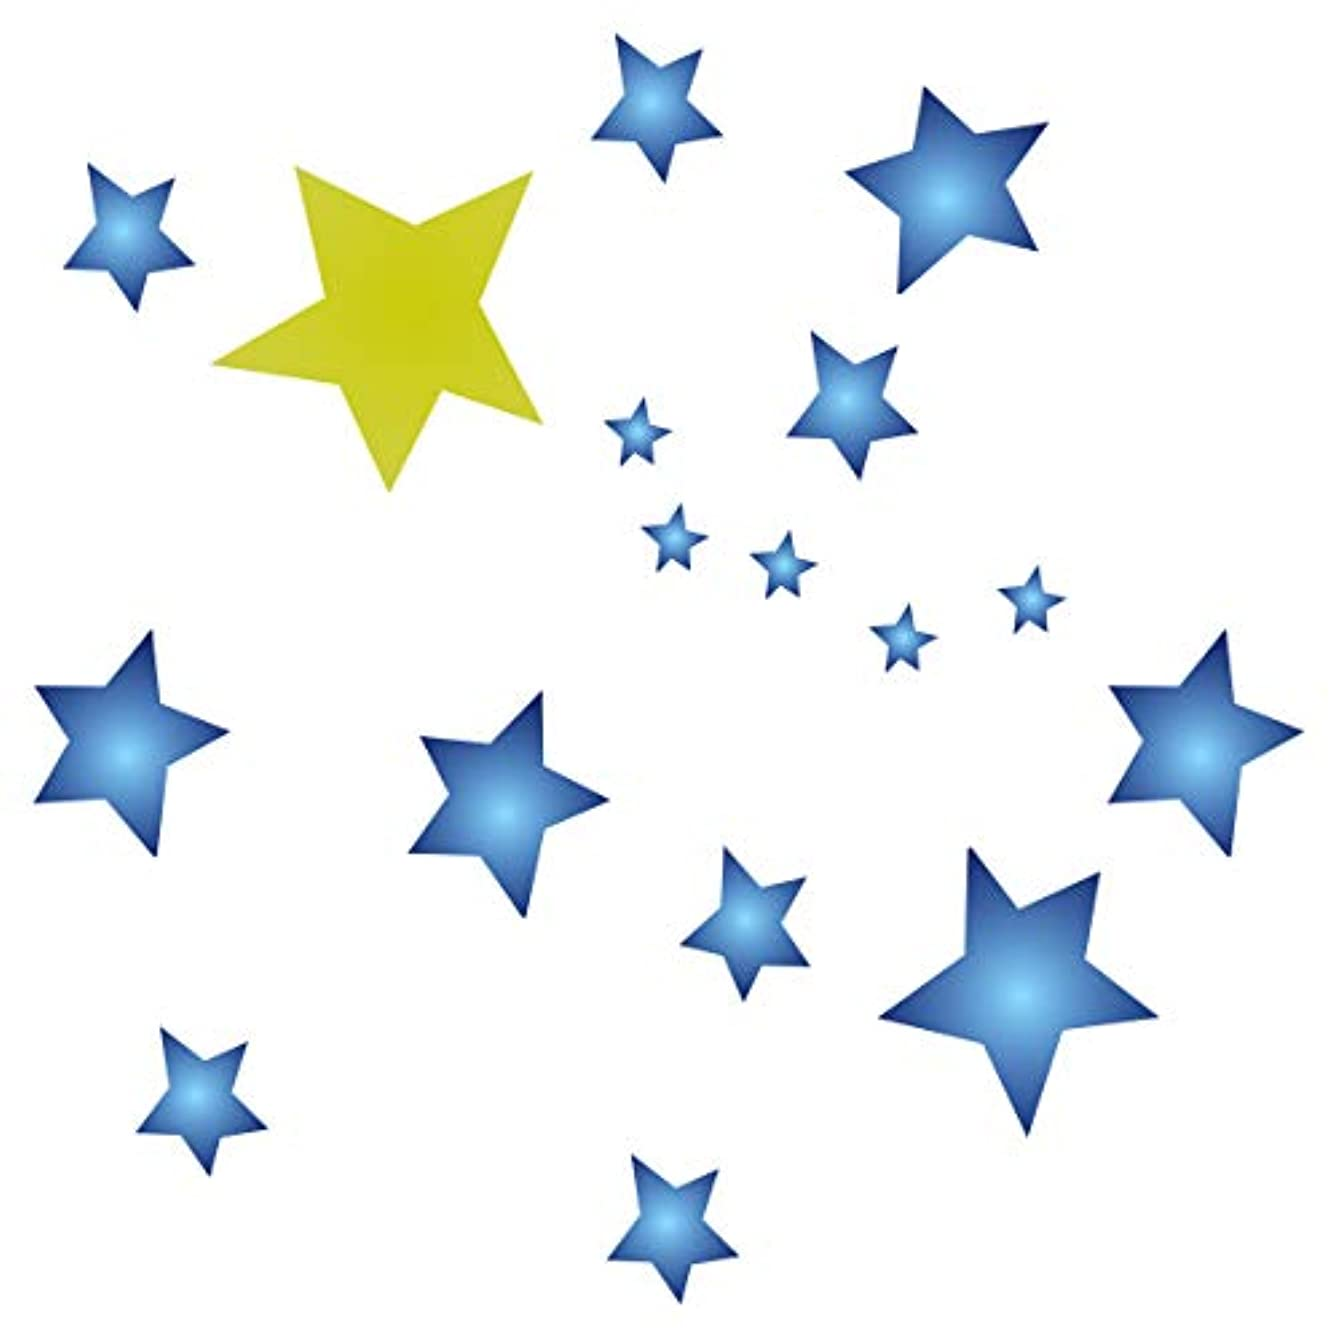 Stars Stencil - 10 x 10 inch (M) - Large Reusable Stars Sky Cluster Allover Pattern Wall Stencil Template - Use on Paper Projects Scrapbook Journal Walls Floors Fabric Furniture Glass Wood etc.